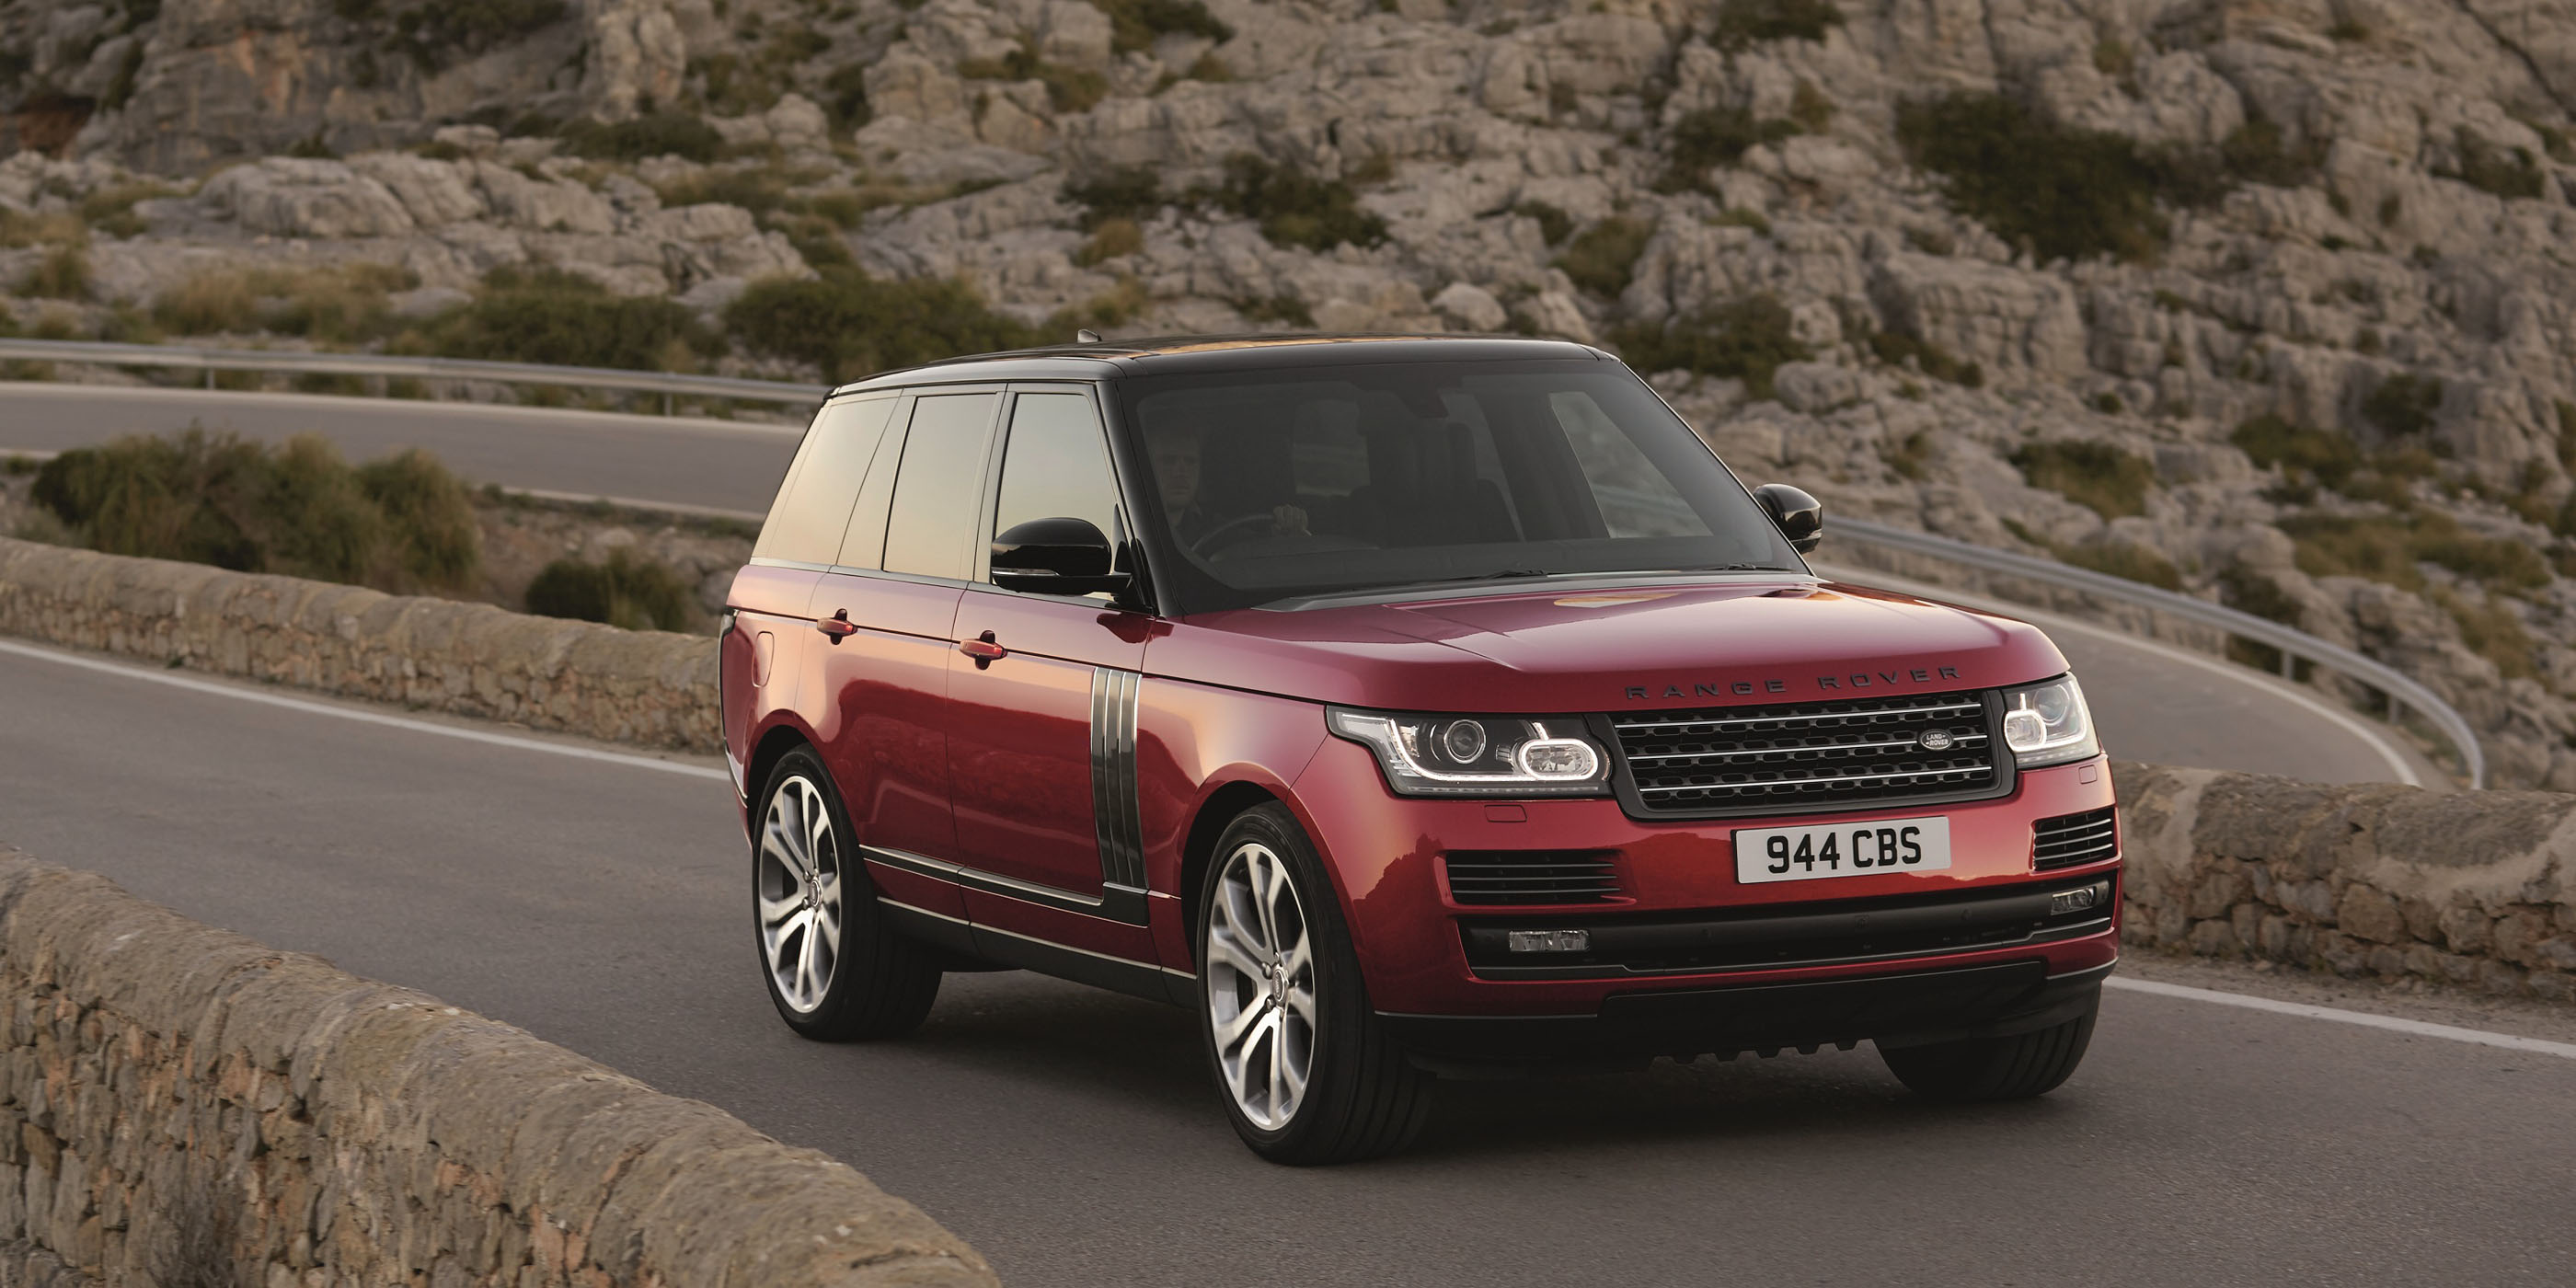 jaguar gettyimages cars rover its to electrify land landrover technica enlarge cheap all by ars